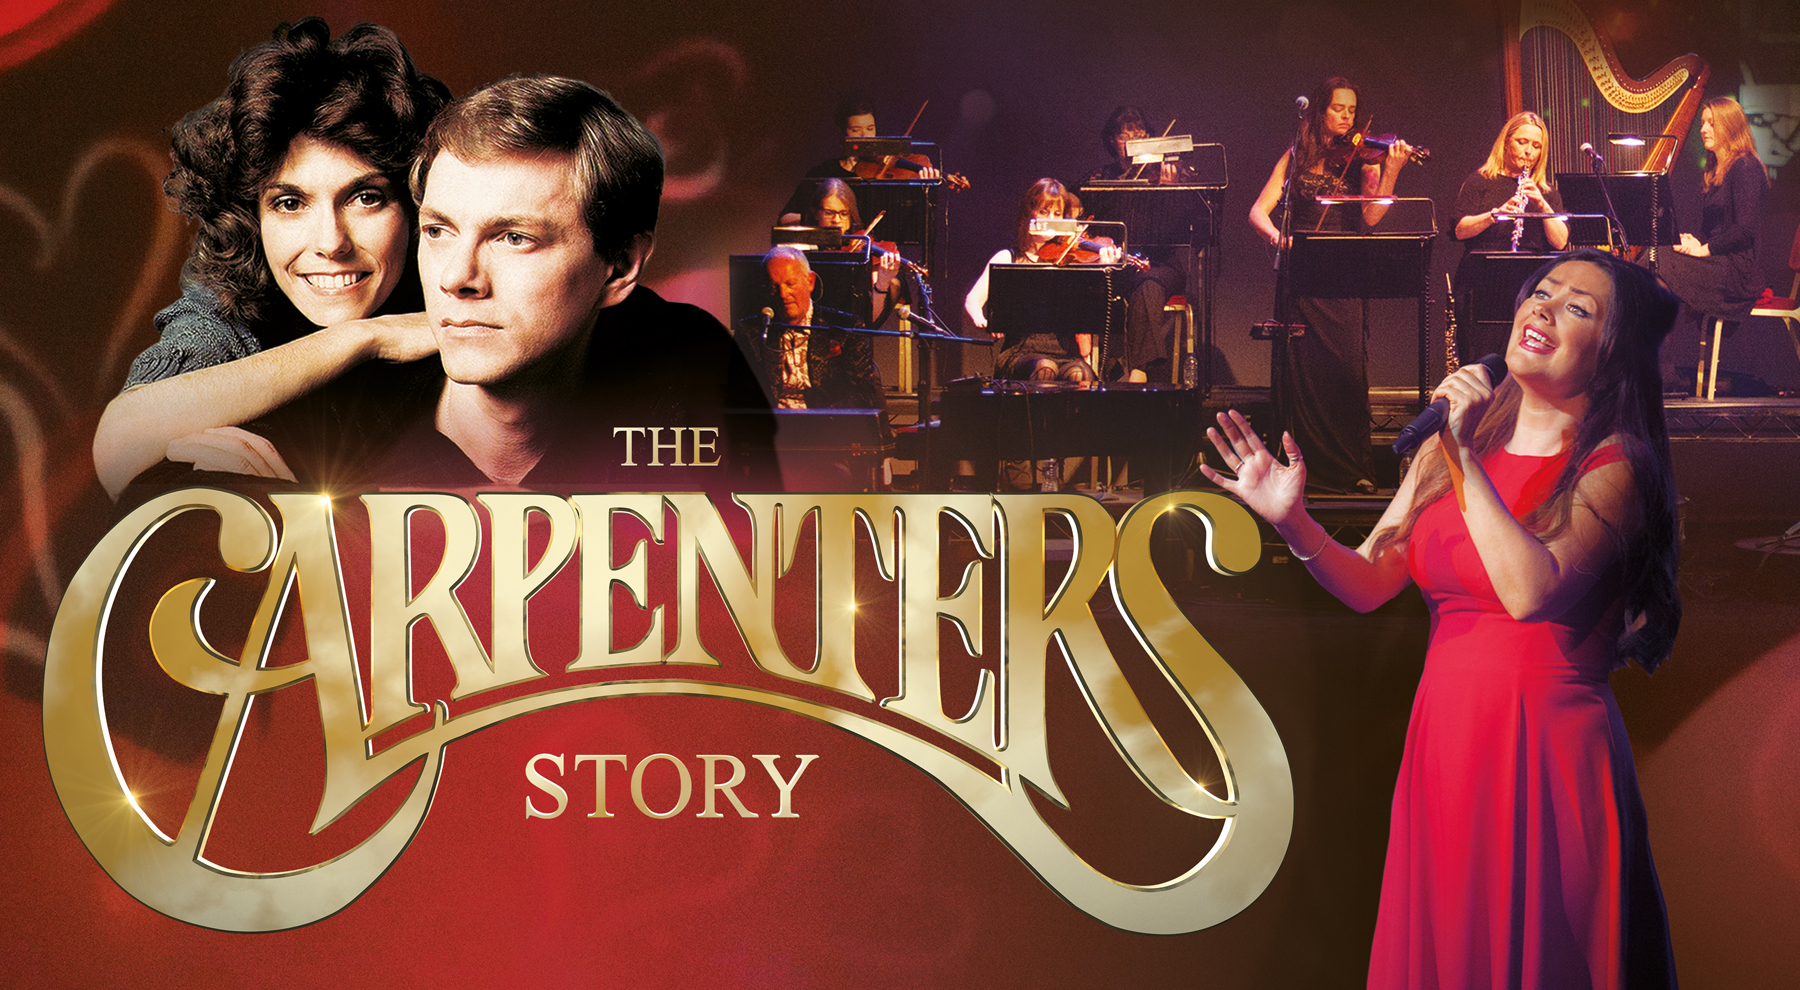 The Carpenters Story - Concert Style Production at GLive Guildford & The New Victoria Theatre Woking Surrey